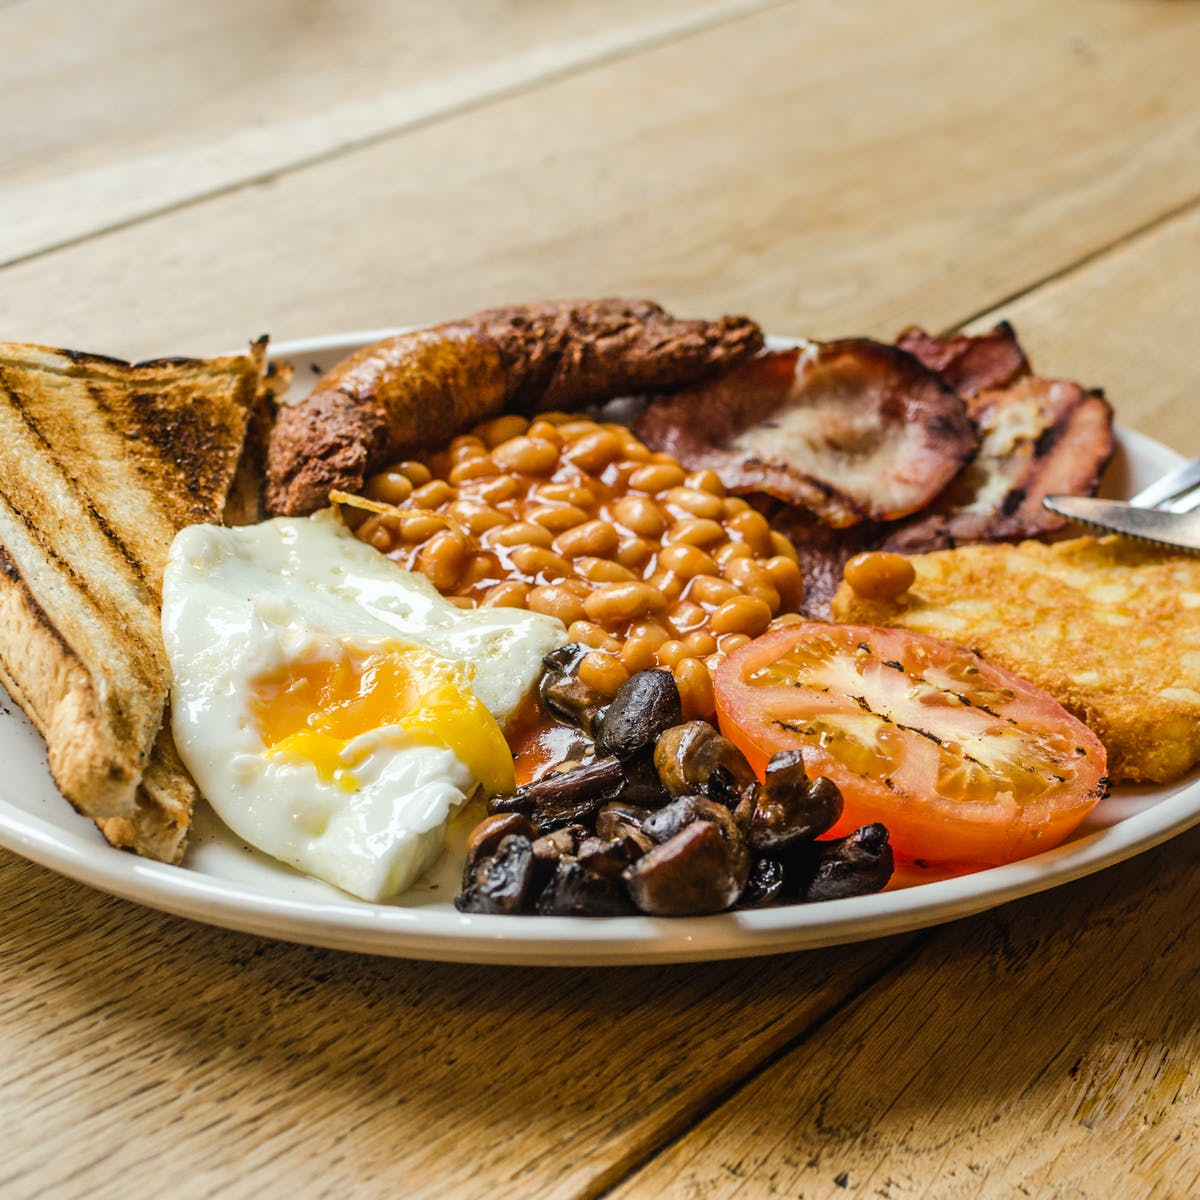 How Brexit will affect each ingredient of the full English